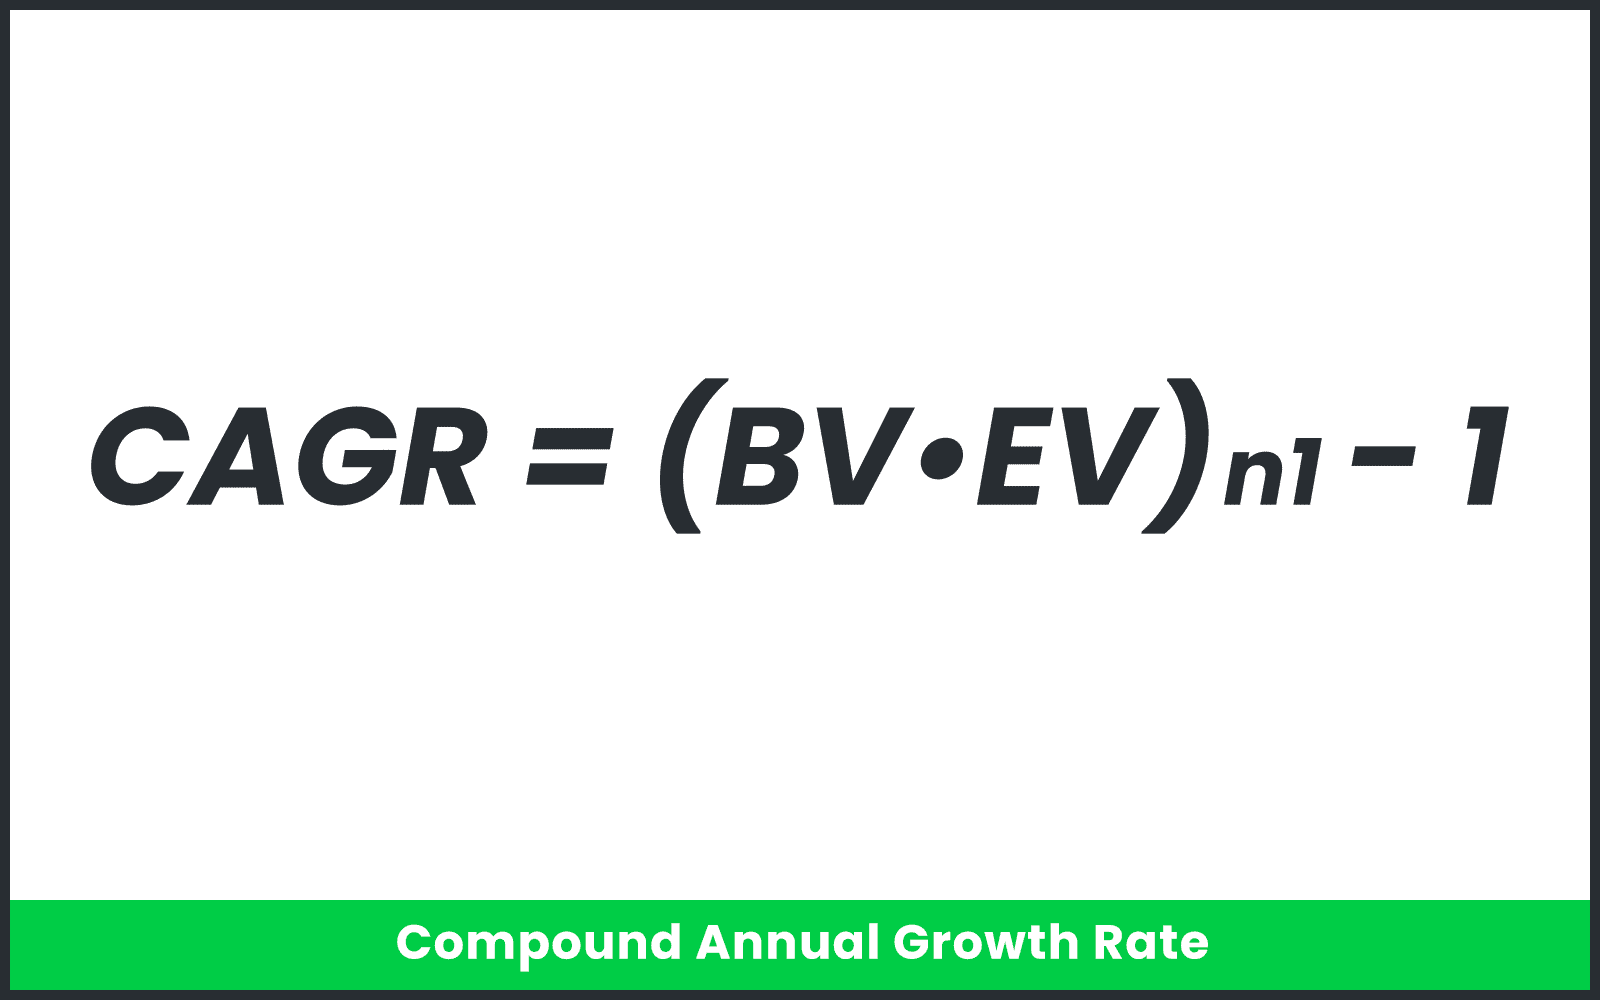 Compound Annual Growth rate is expressed as anequation